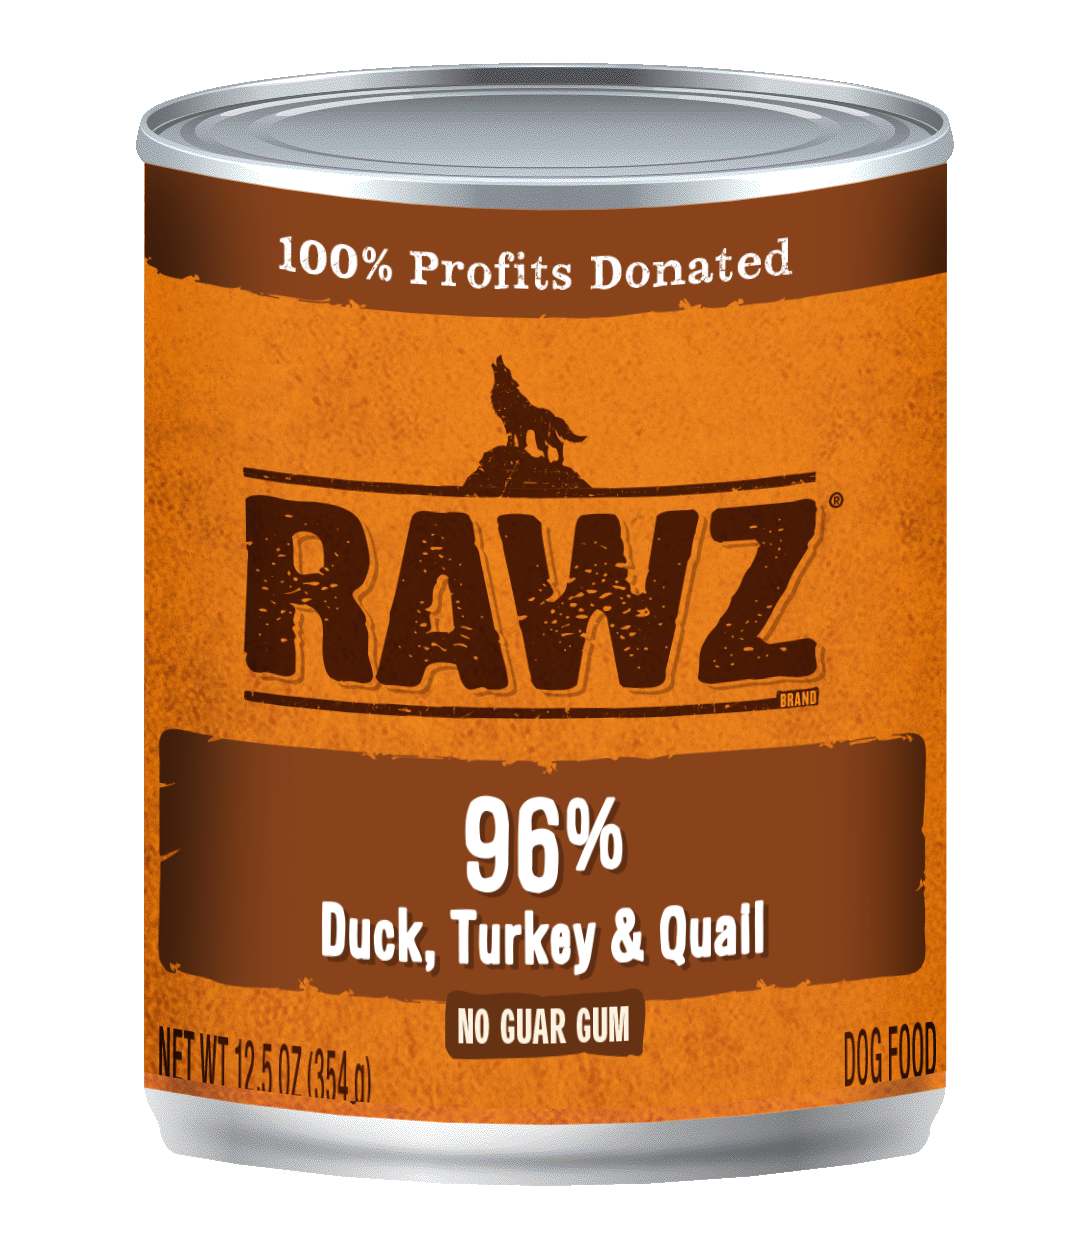 RAWZ Dog 96% Duck, Turkey & Quail, 12.5-oz